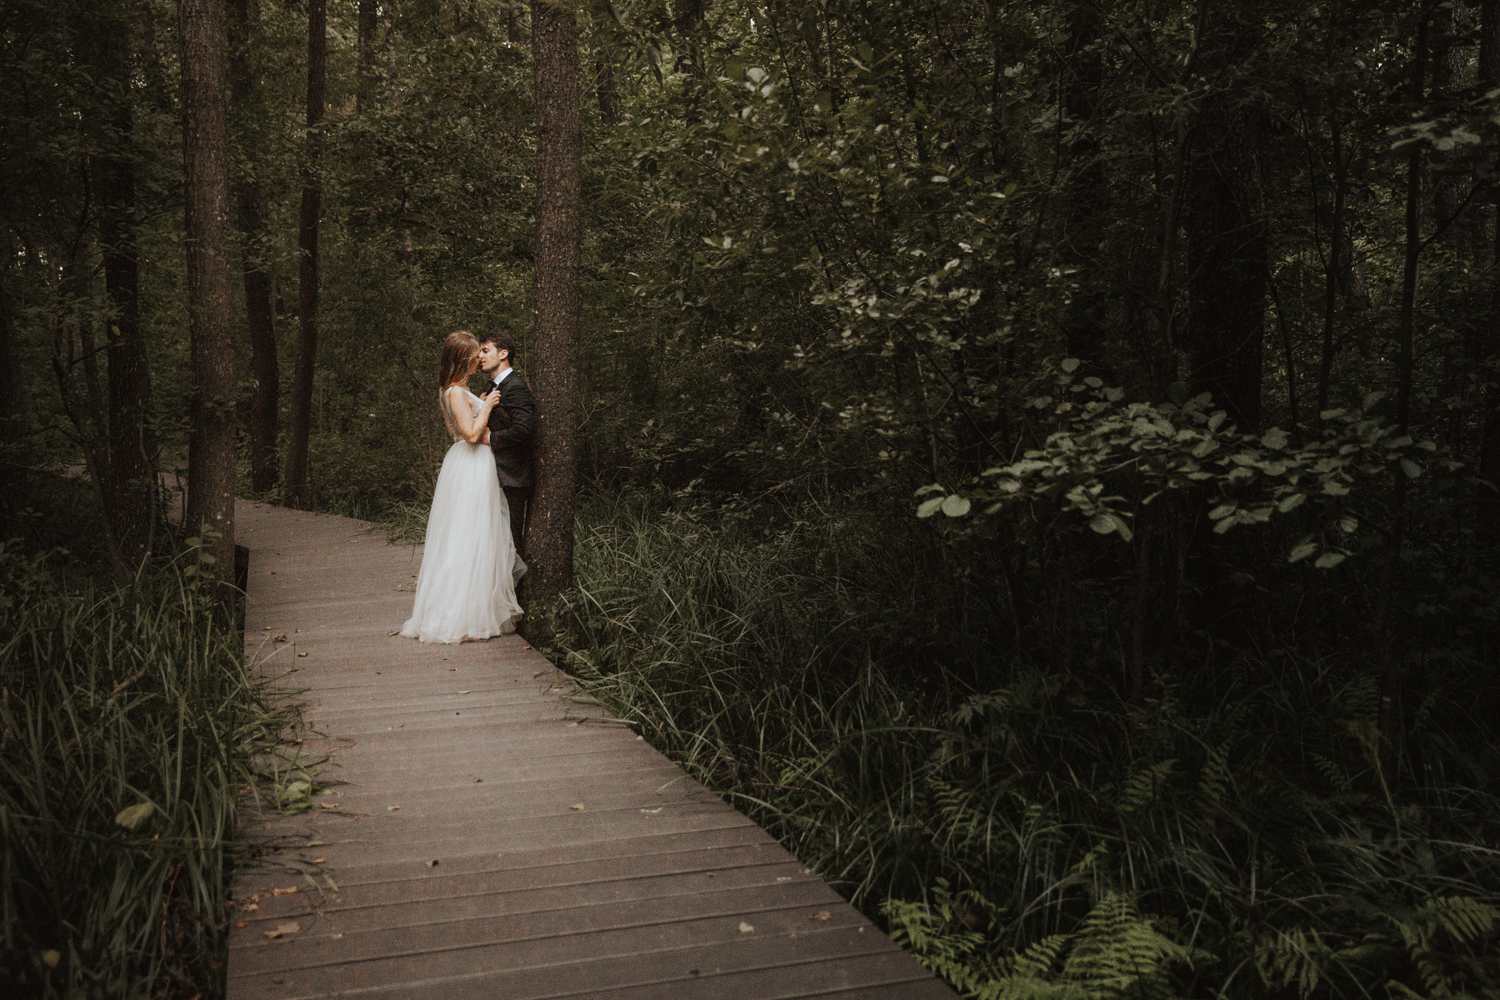 weddingphotograher_klaudia_rafal_nationalpark_550.jpg